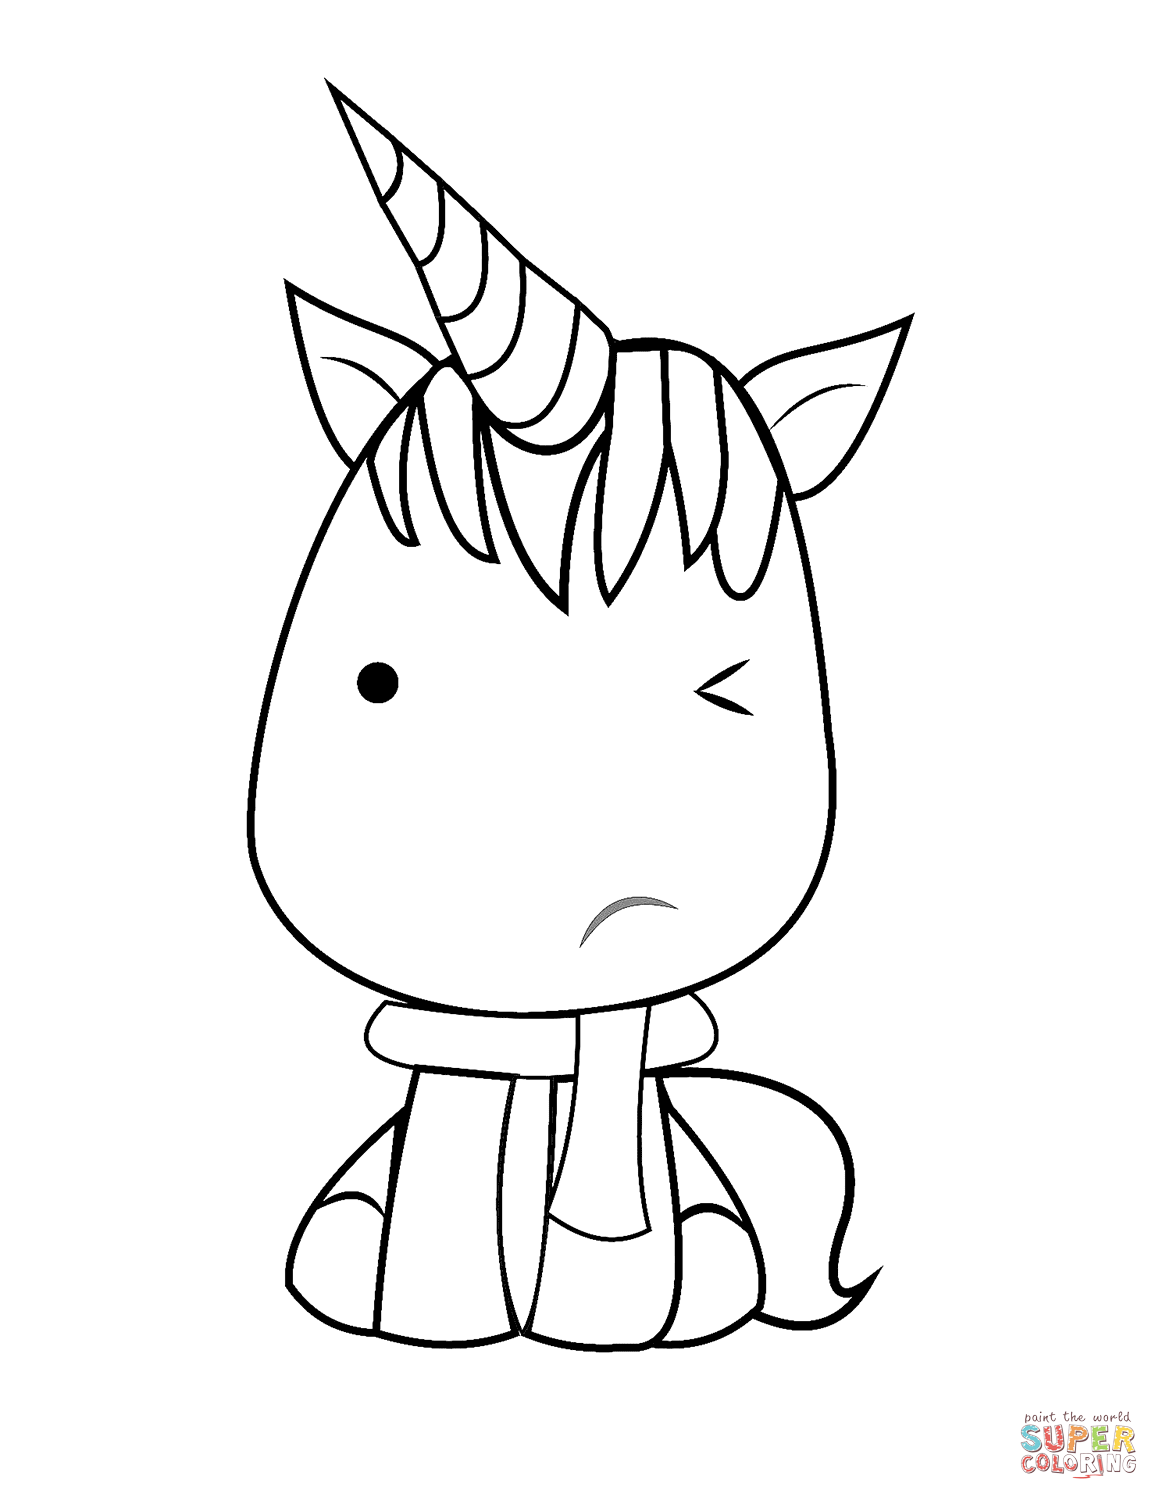 Kawaii Unicorn Drawing at GetDrawings | Free download